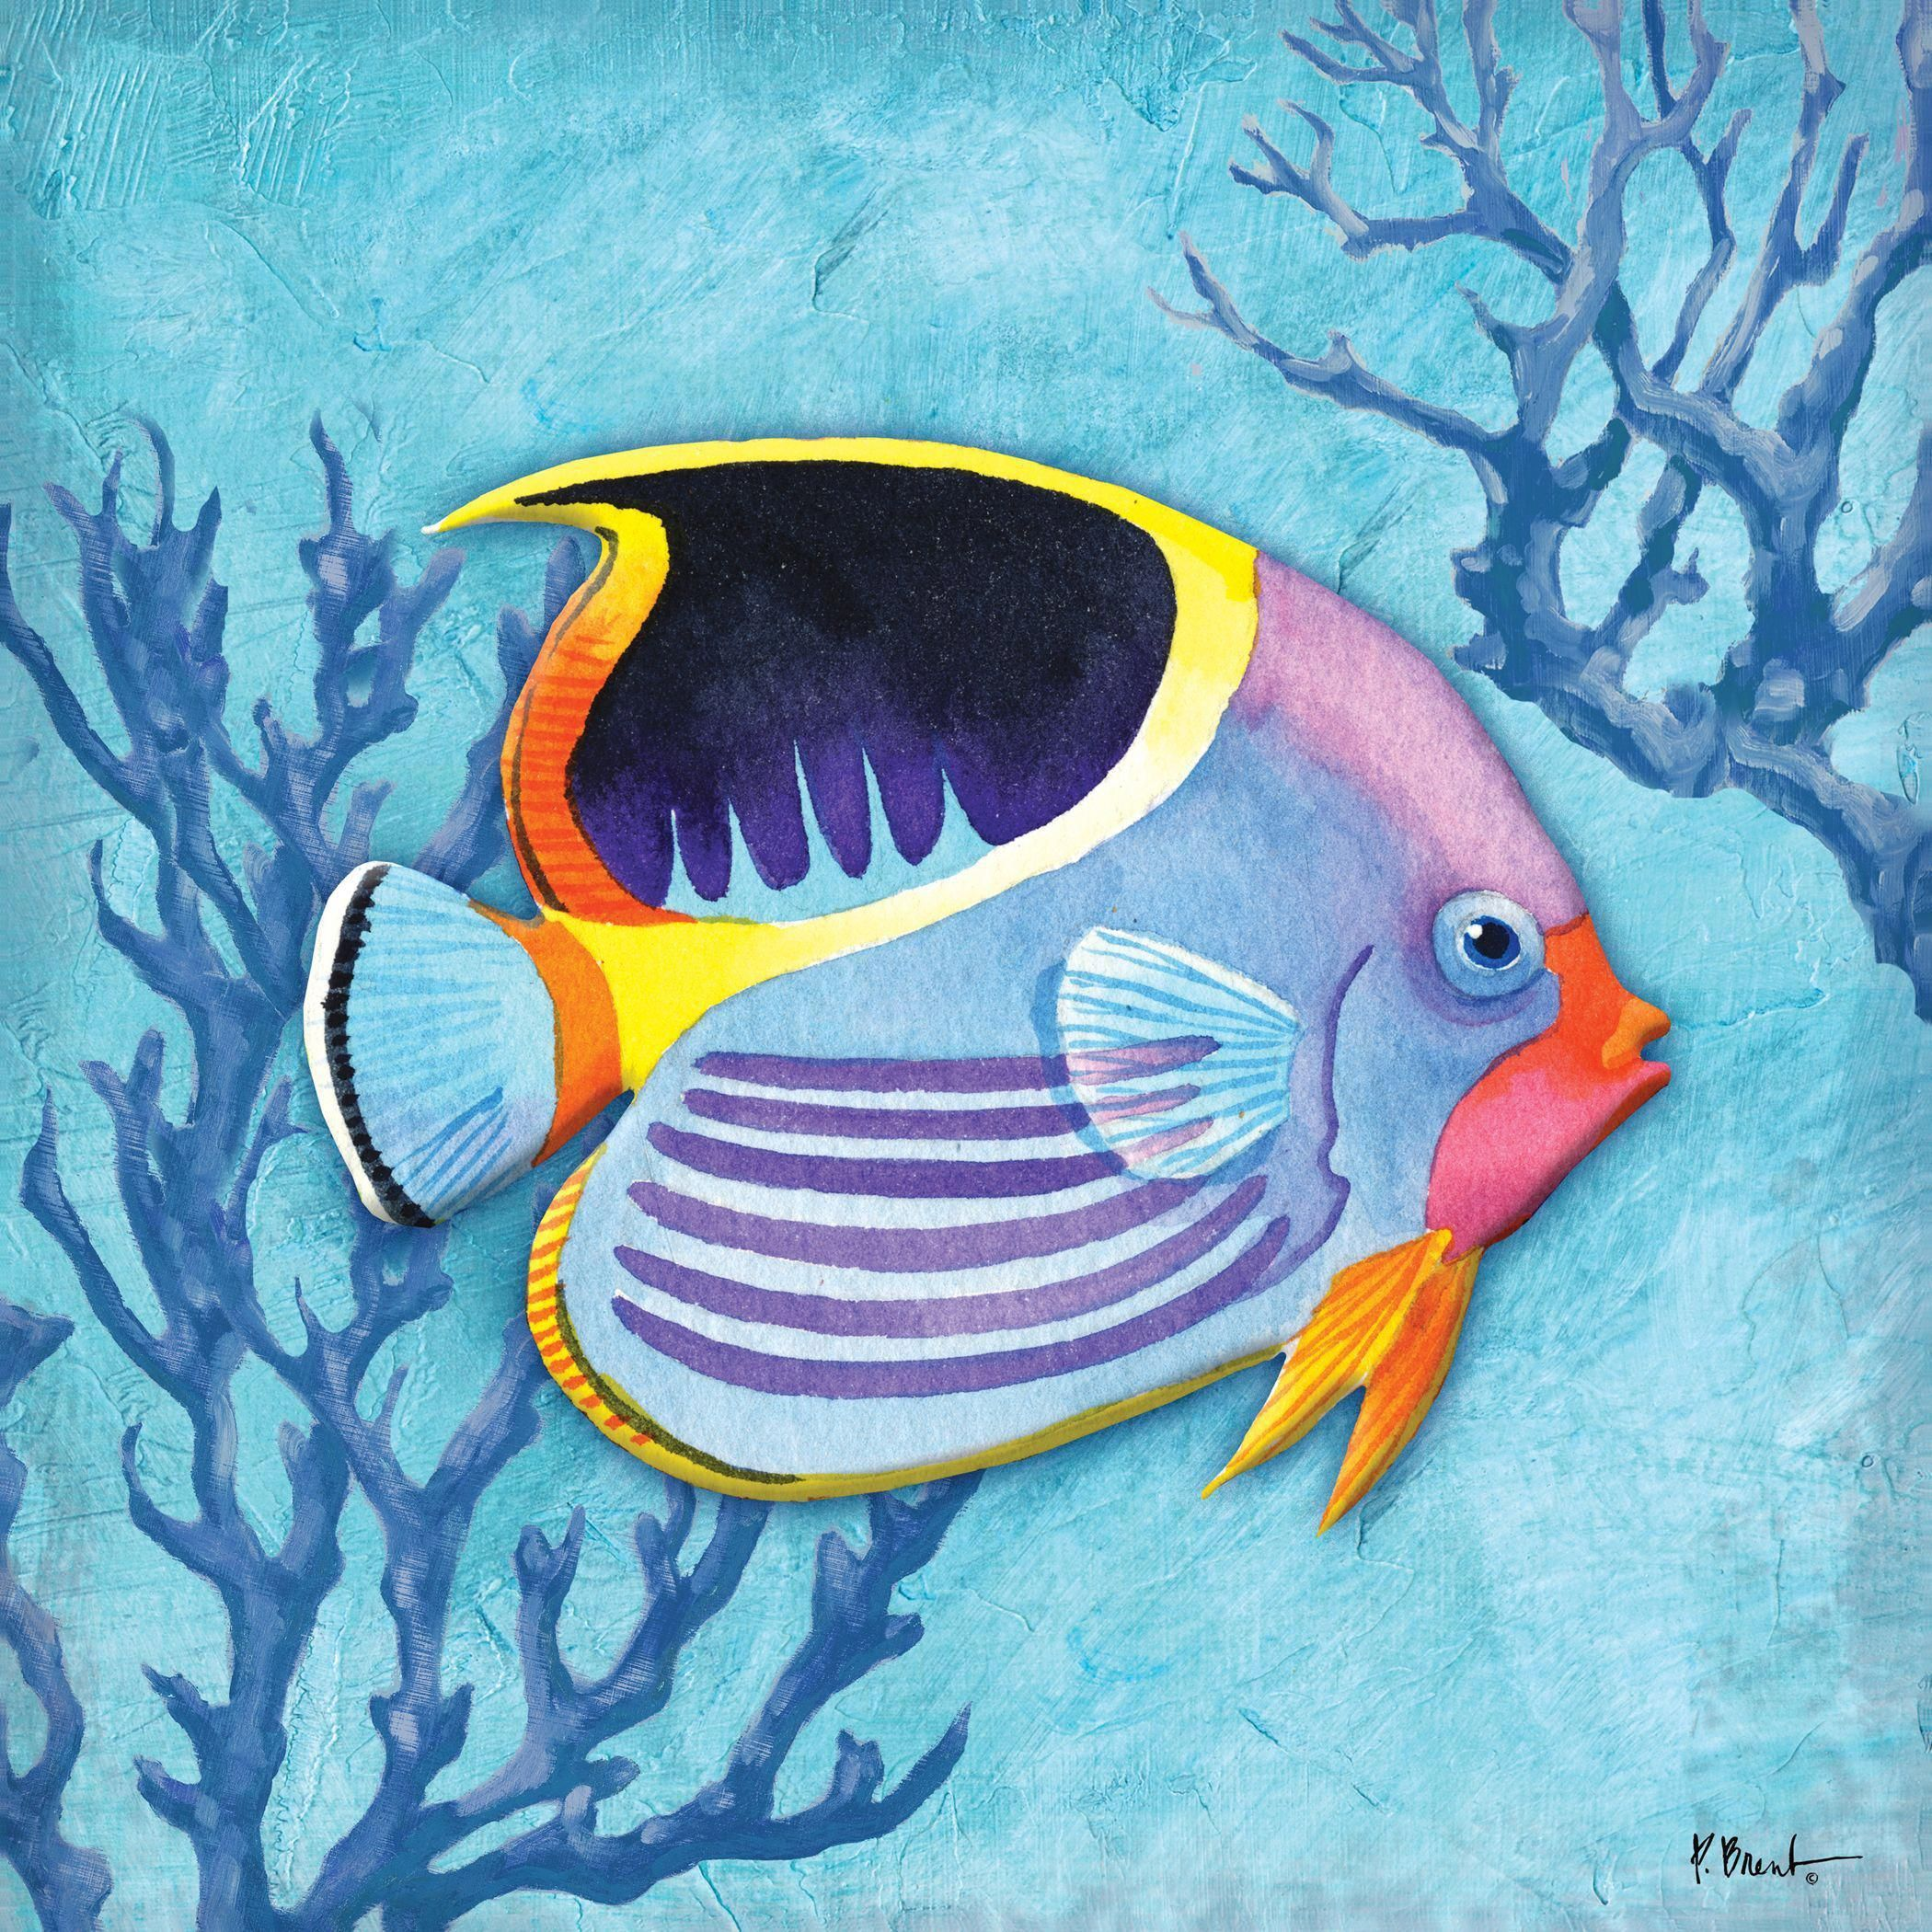 This beautiful artwork titled 'Azure Tropical Fish I' by